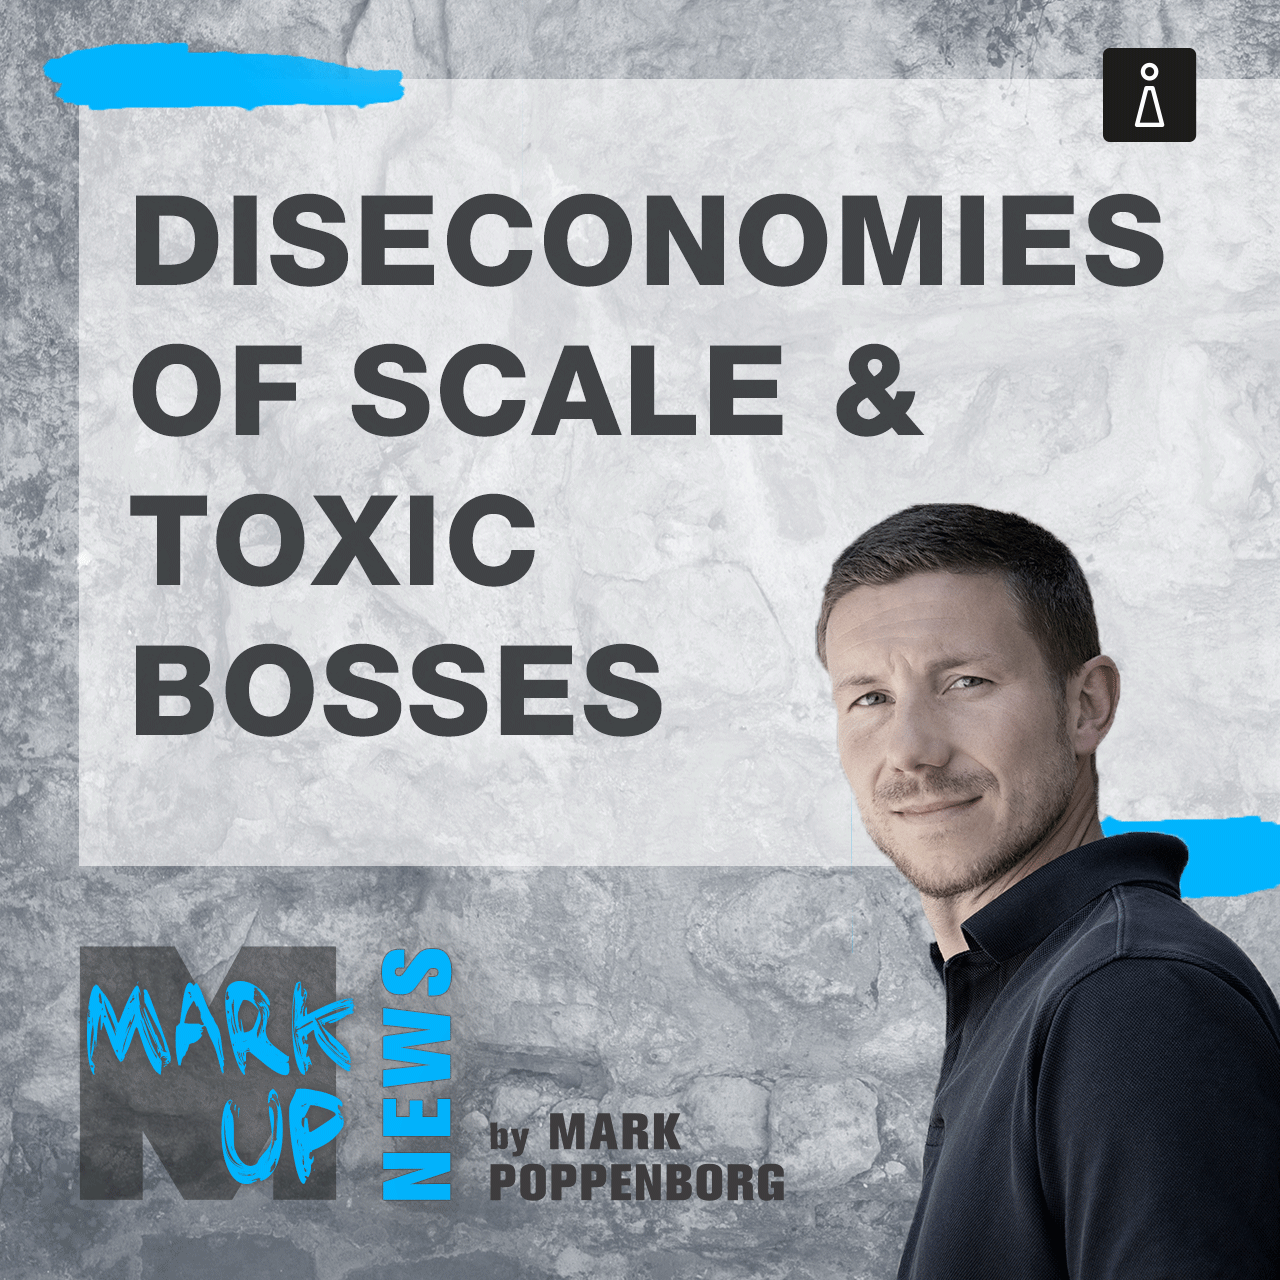 MarkUp News: Diseconomies o scale & toxic bosses